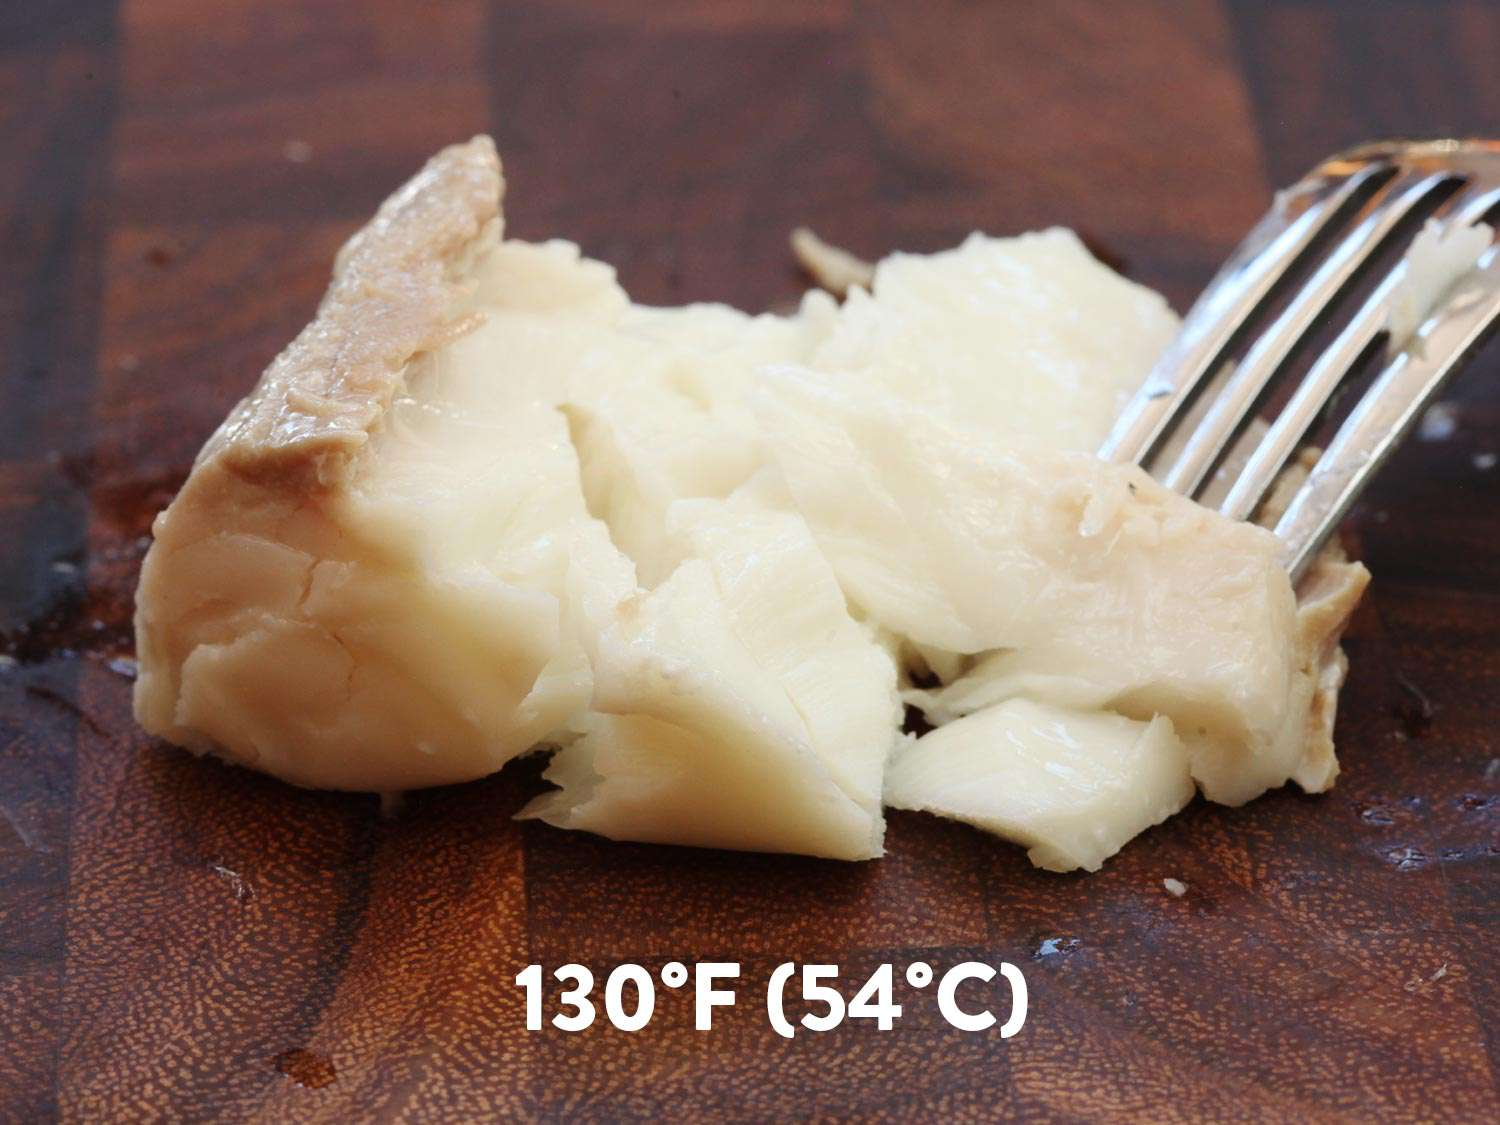 A piece of sous vide halibut cooked to 130 degrees F. It's being flaked with a fork.